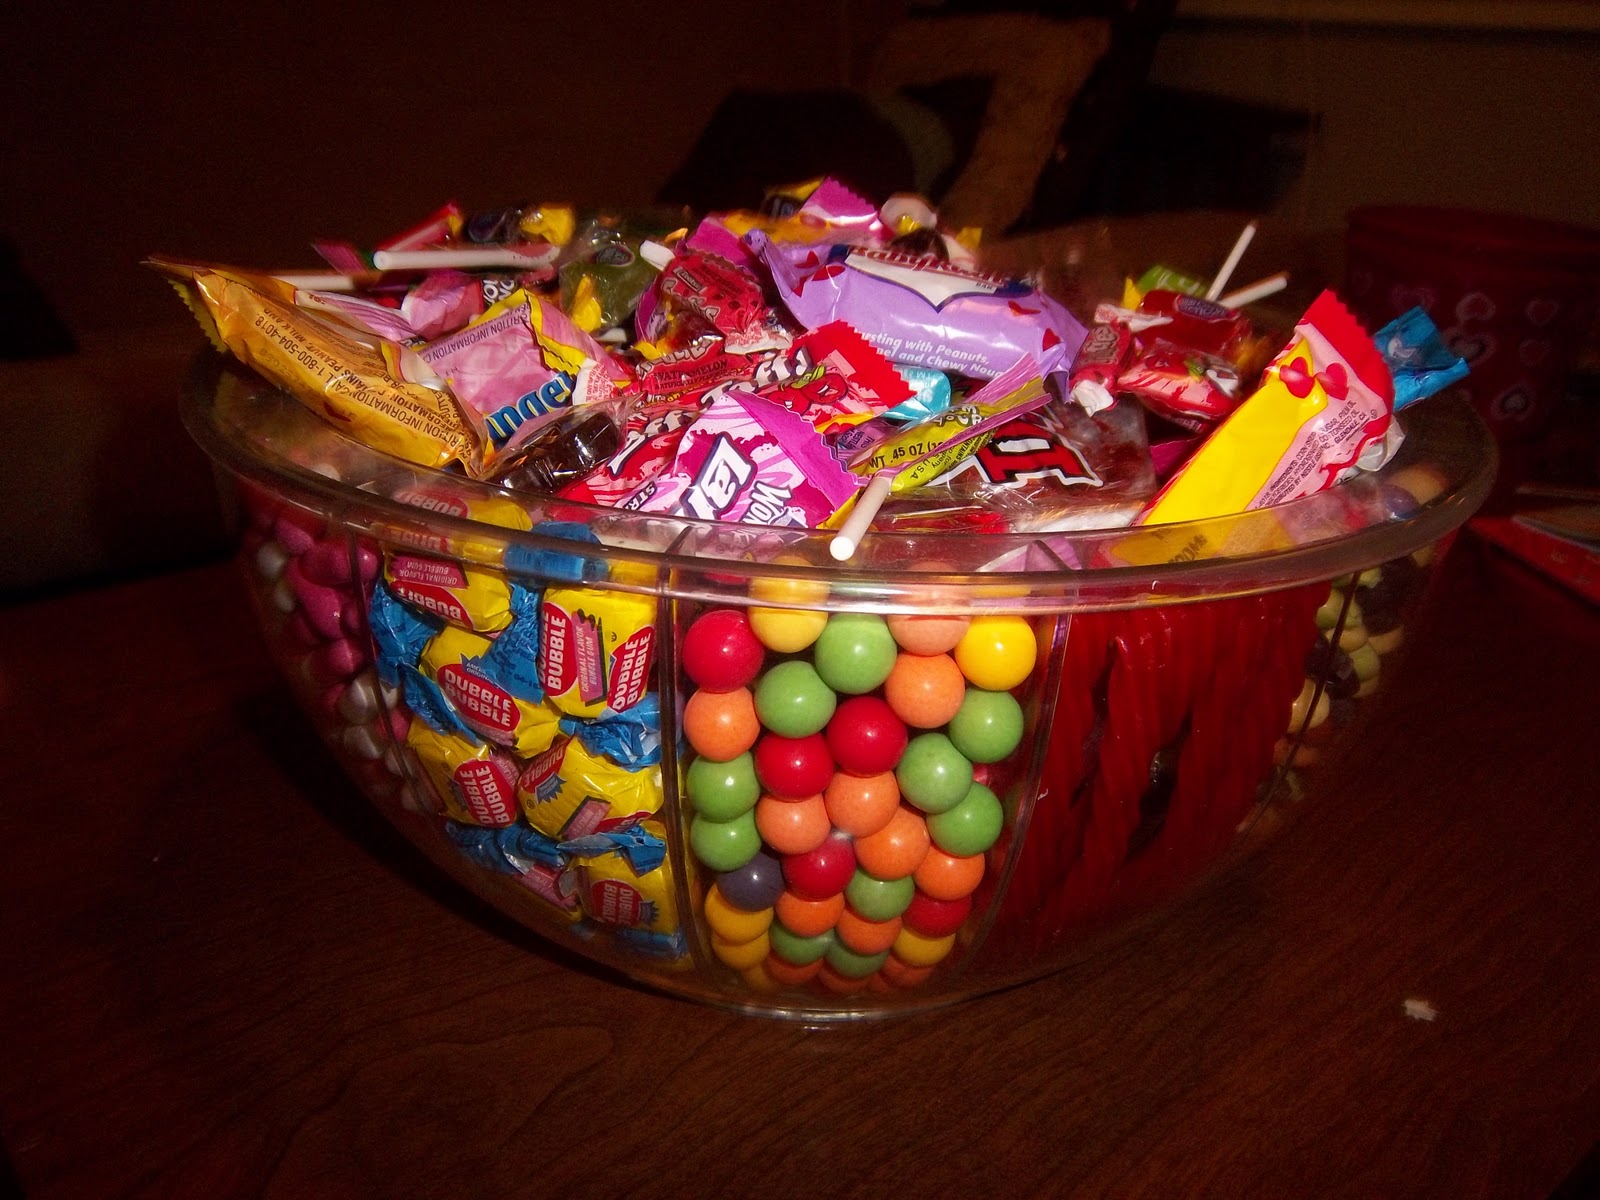 Kelsou0027s Candy Dish   Blogger